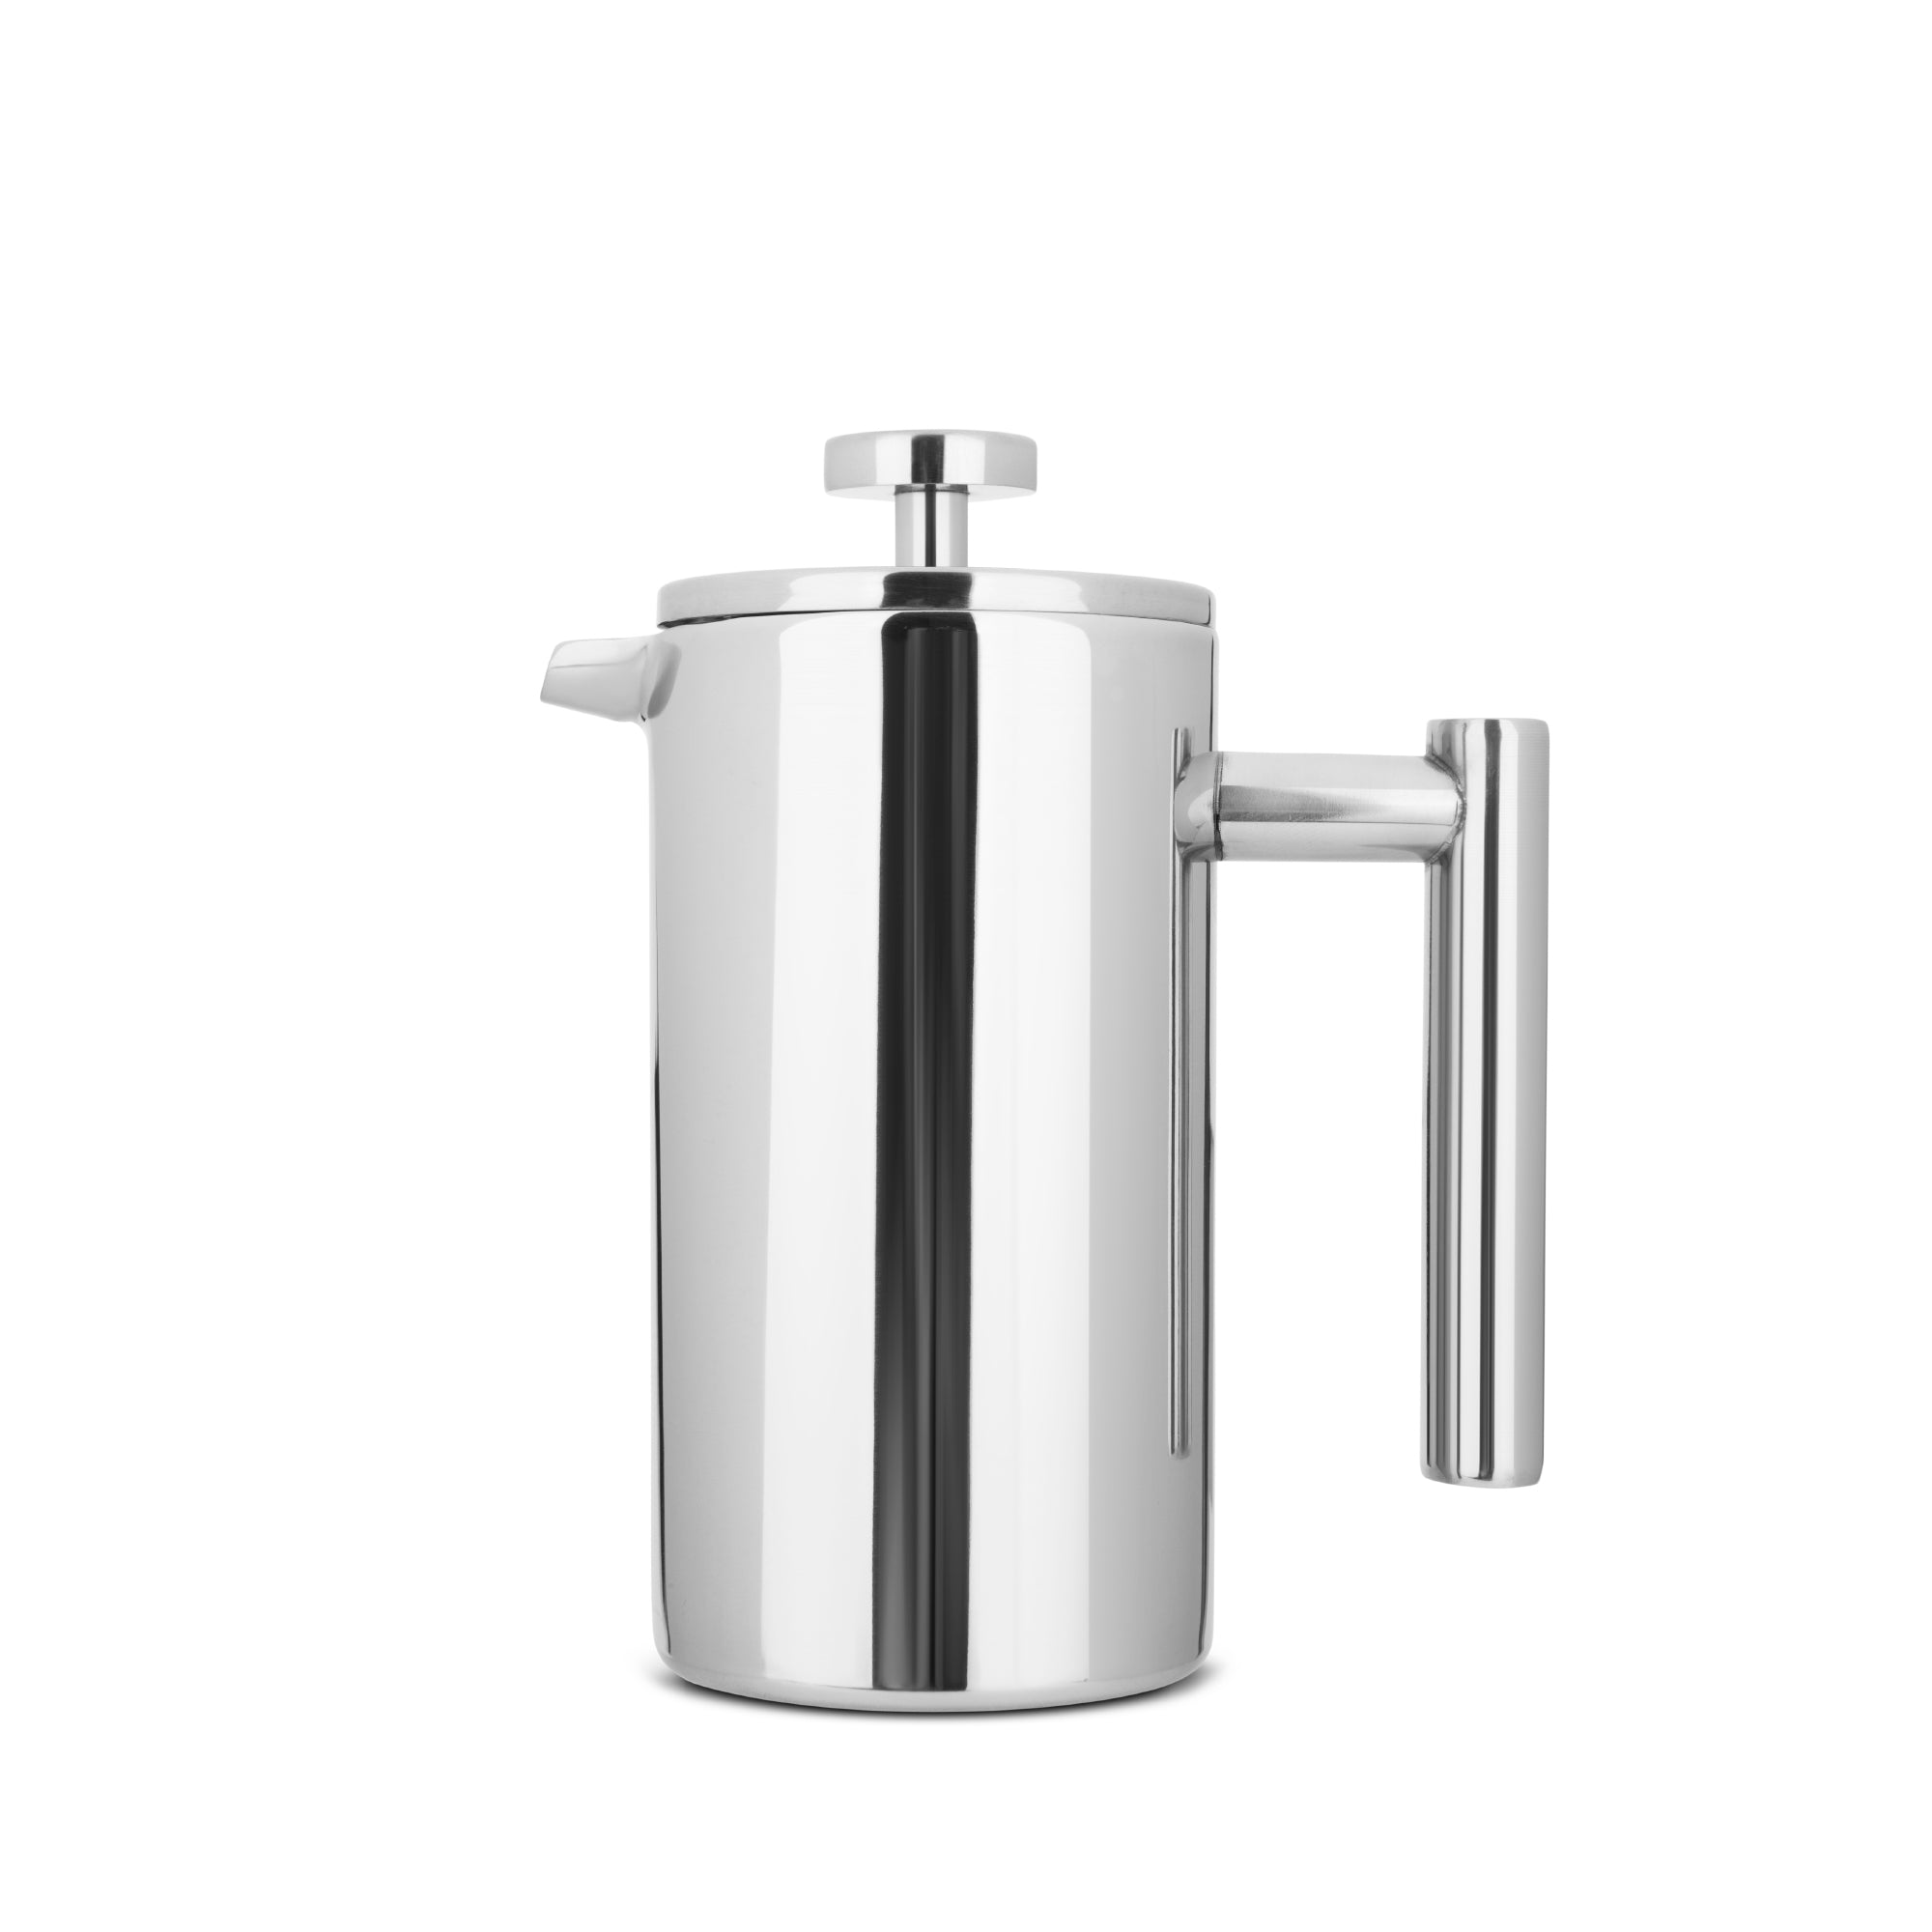 EspressoWorks French Press Coffee Maker